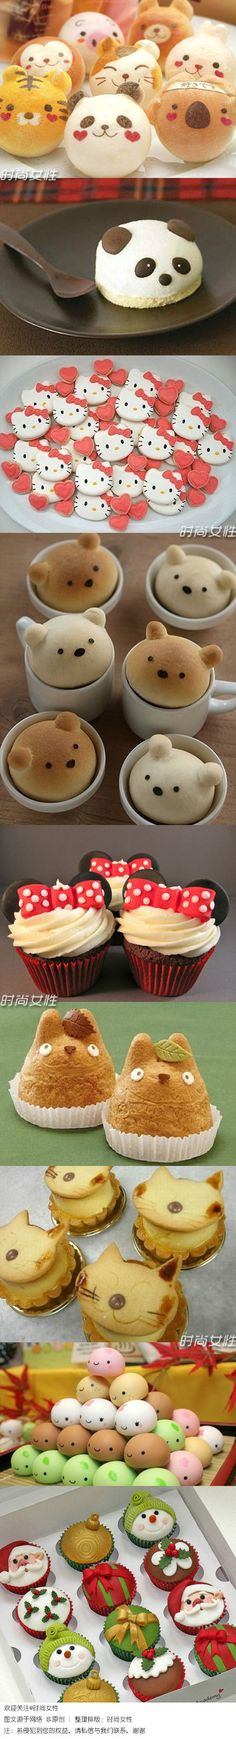 Cute Pastry